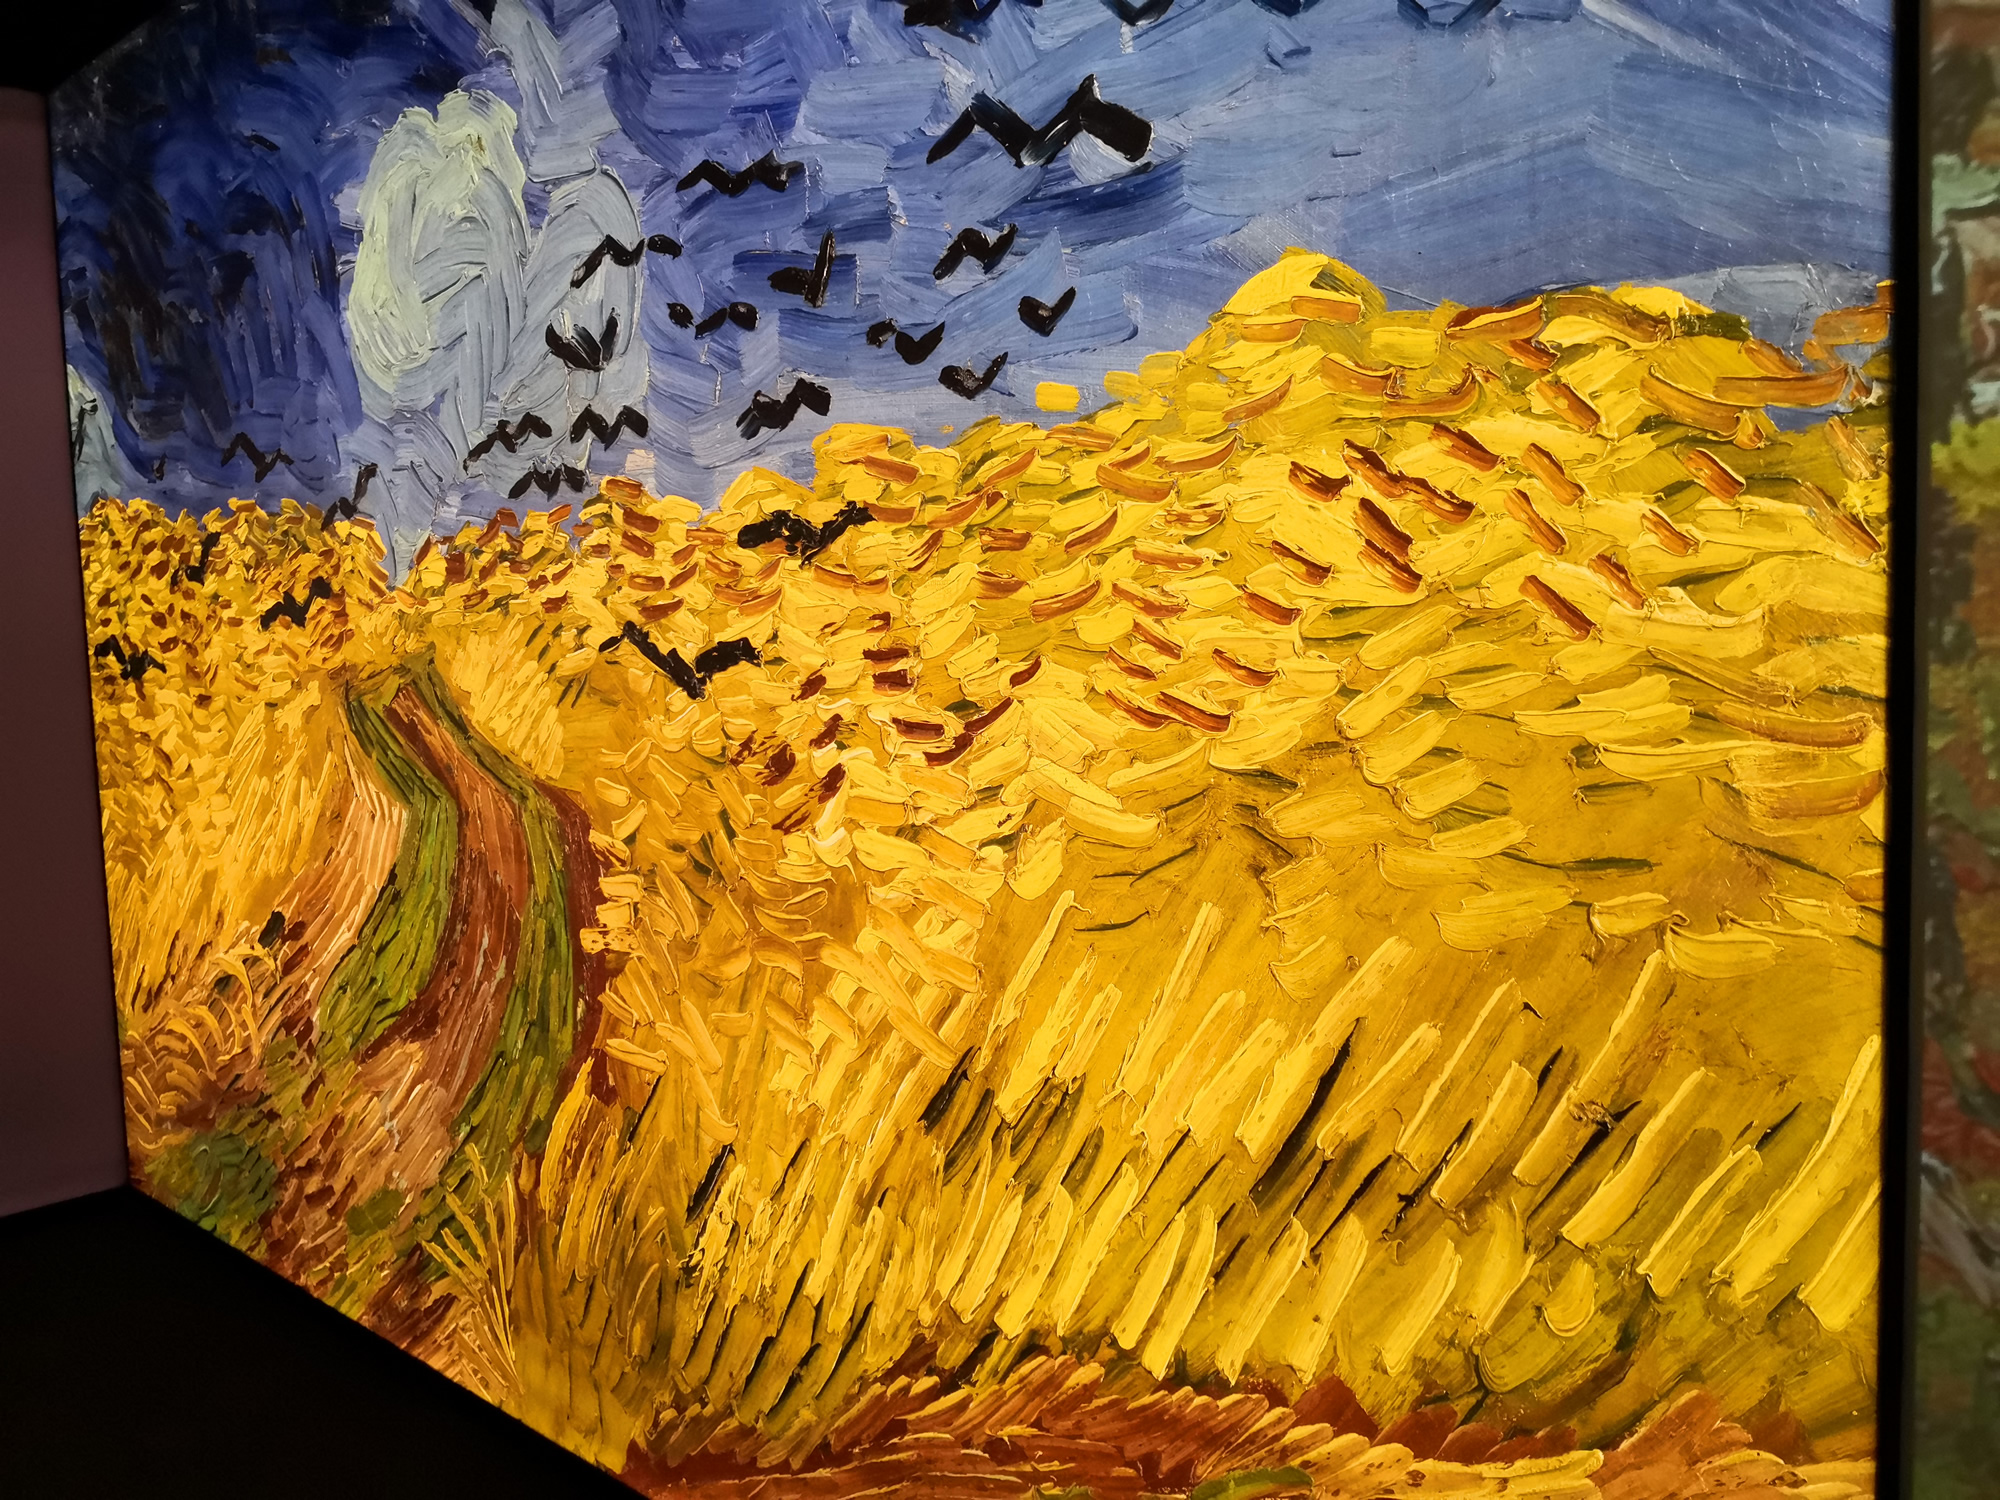 The Van Gogh Experience on London's South Bank